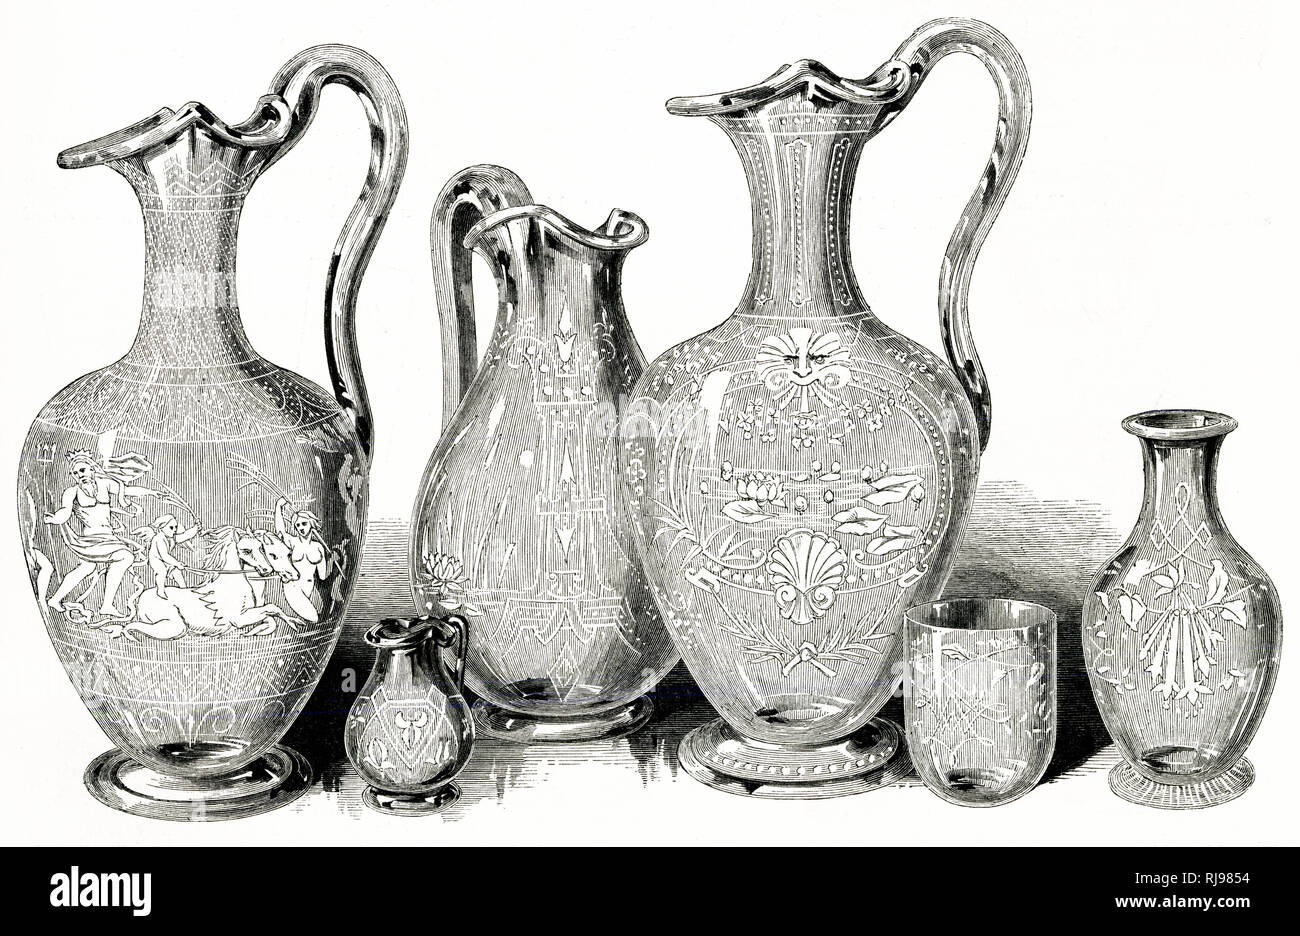 Engraved glassware at the Great Exhibition, Hyde Park, London. - Stock Image